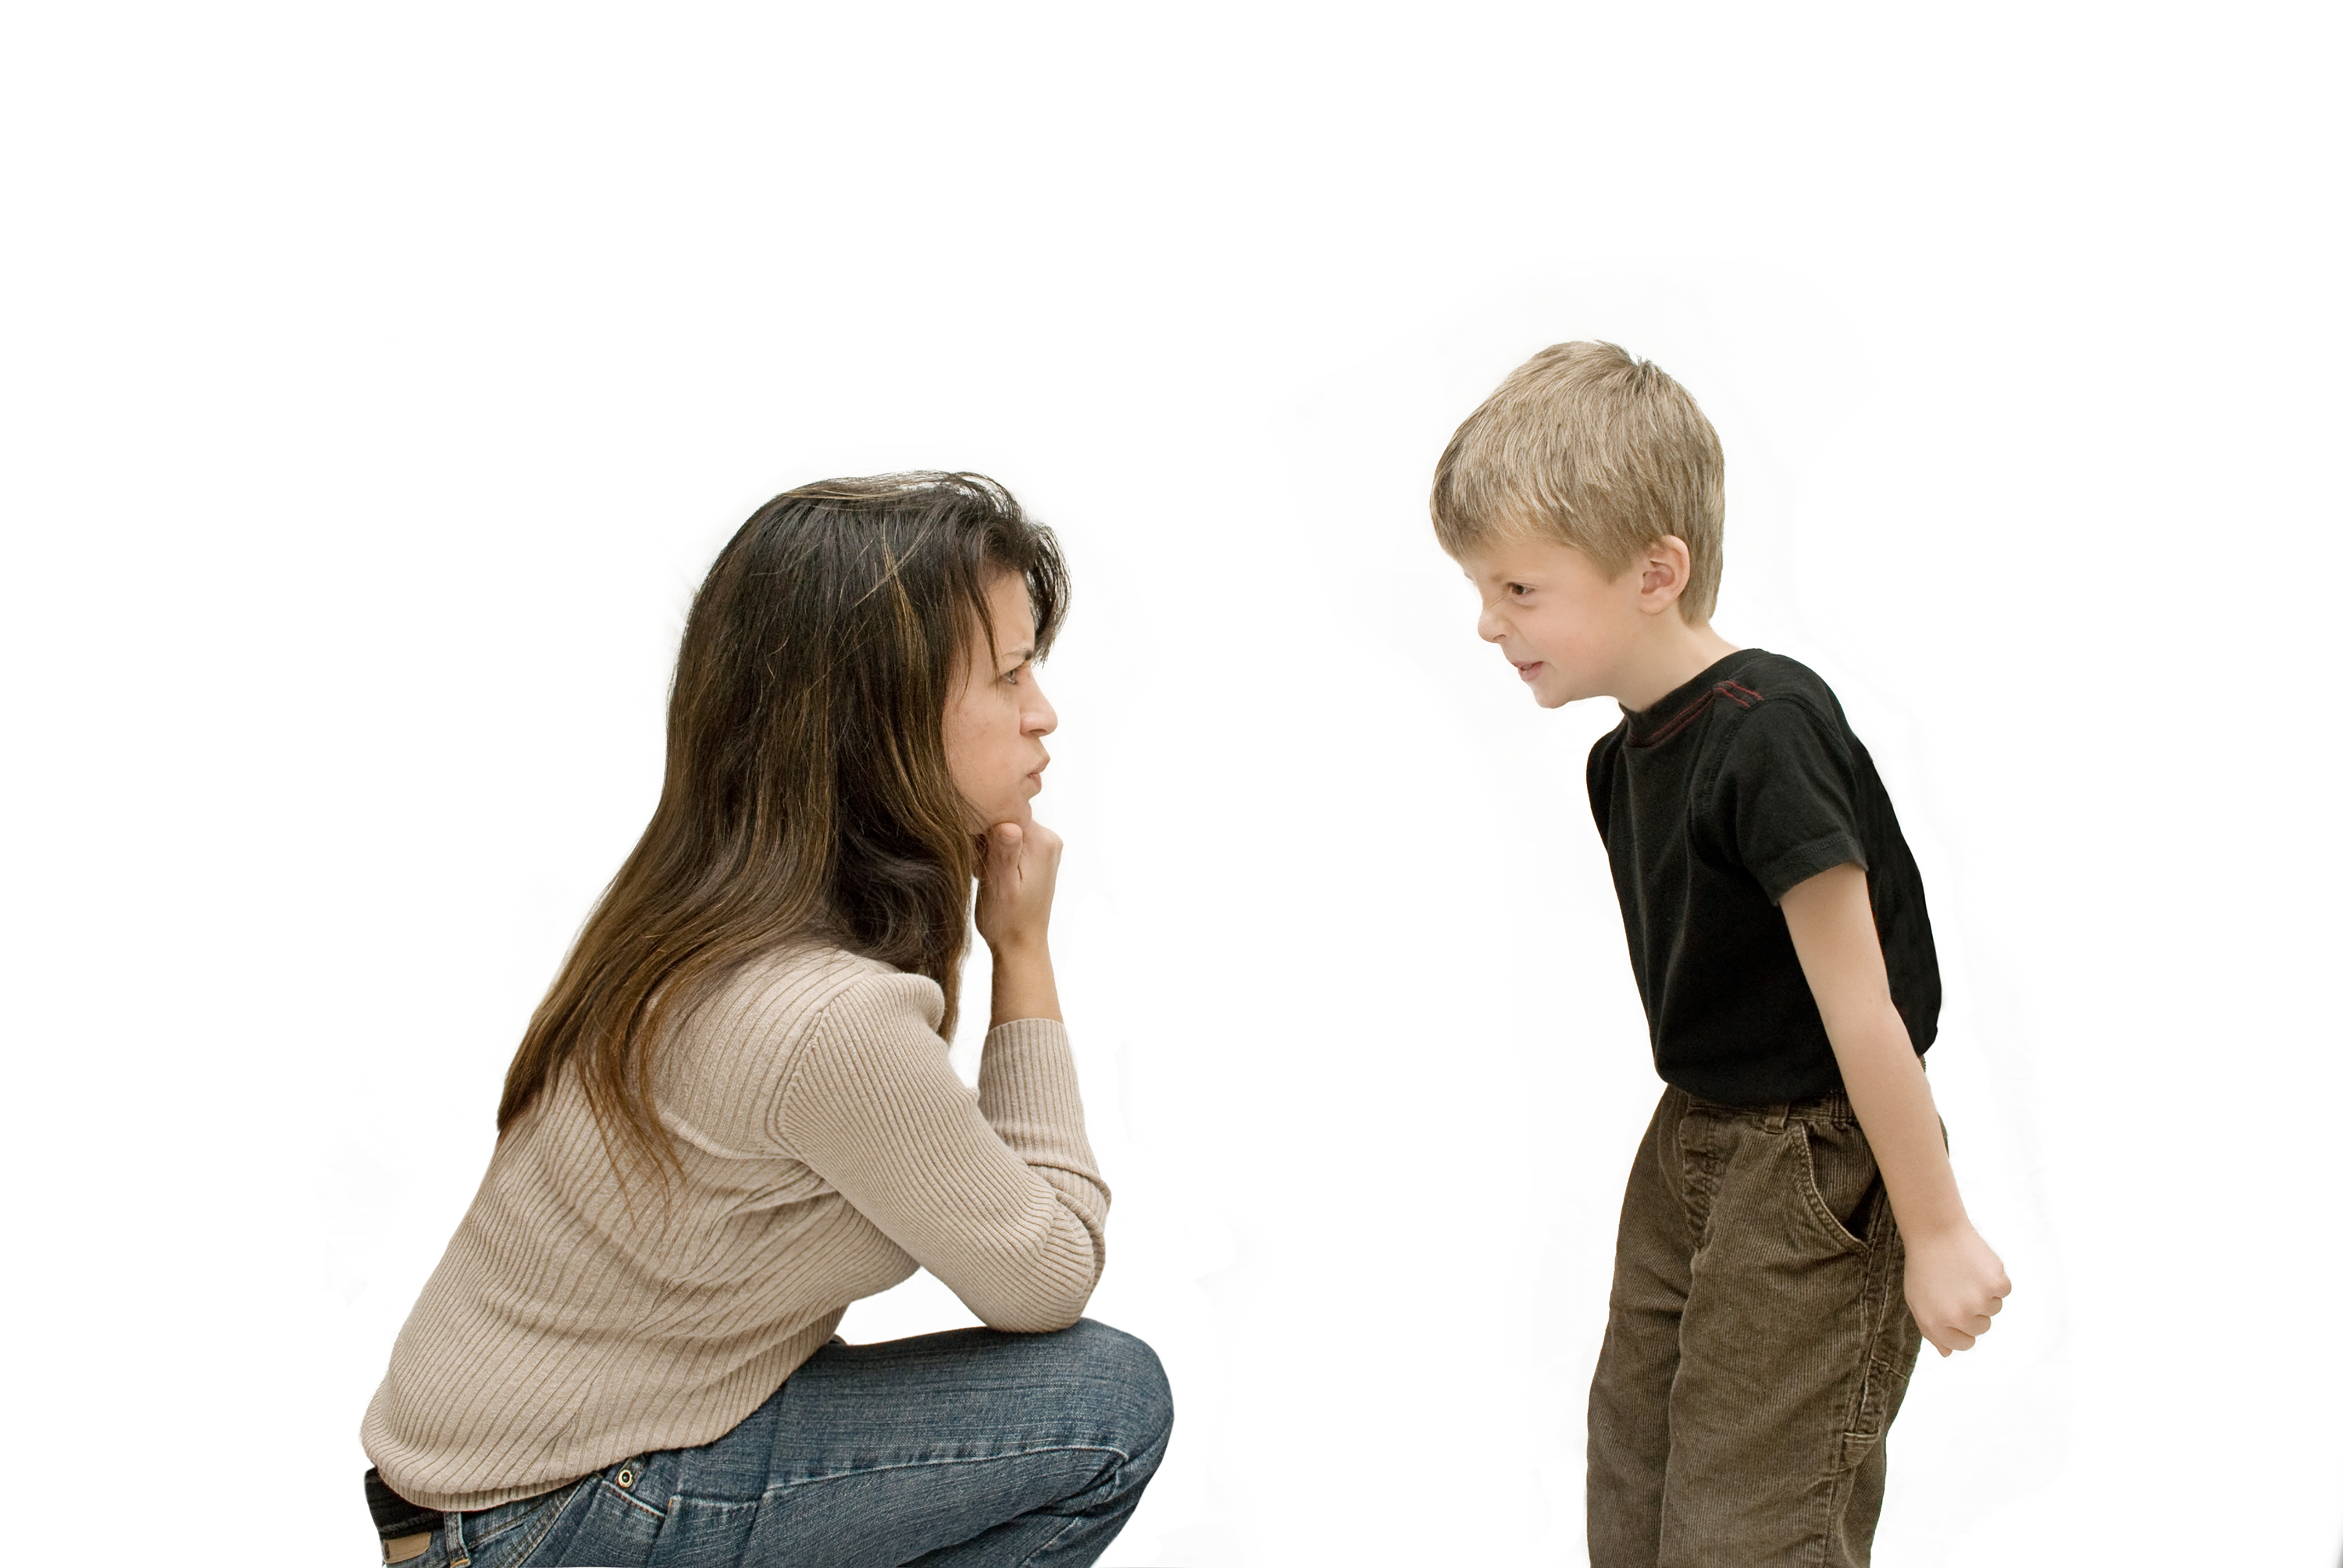 parent child parenting persistent fighting conflict behavior children mother kid mom consequences being step teacher feel days blogs candy extension